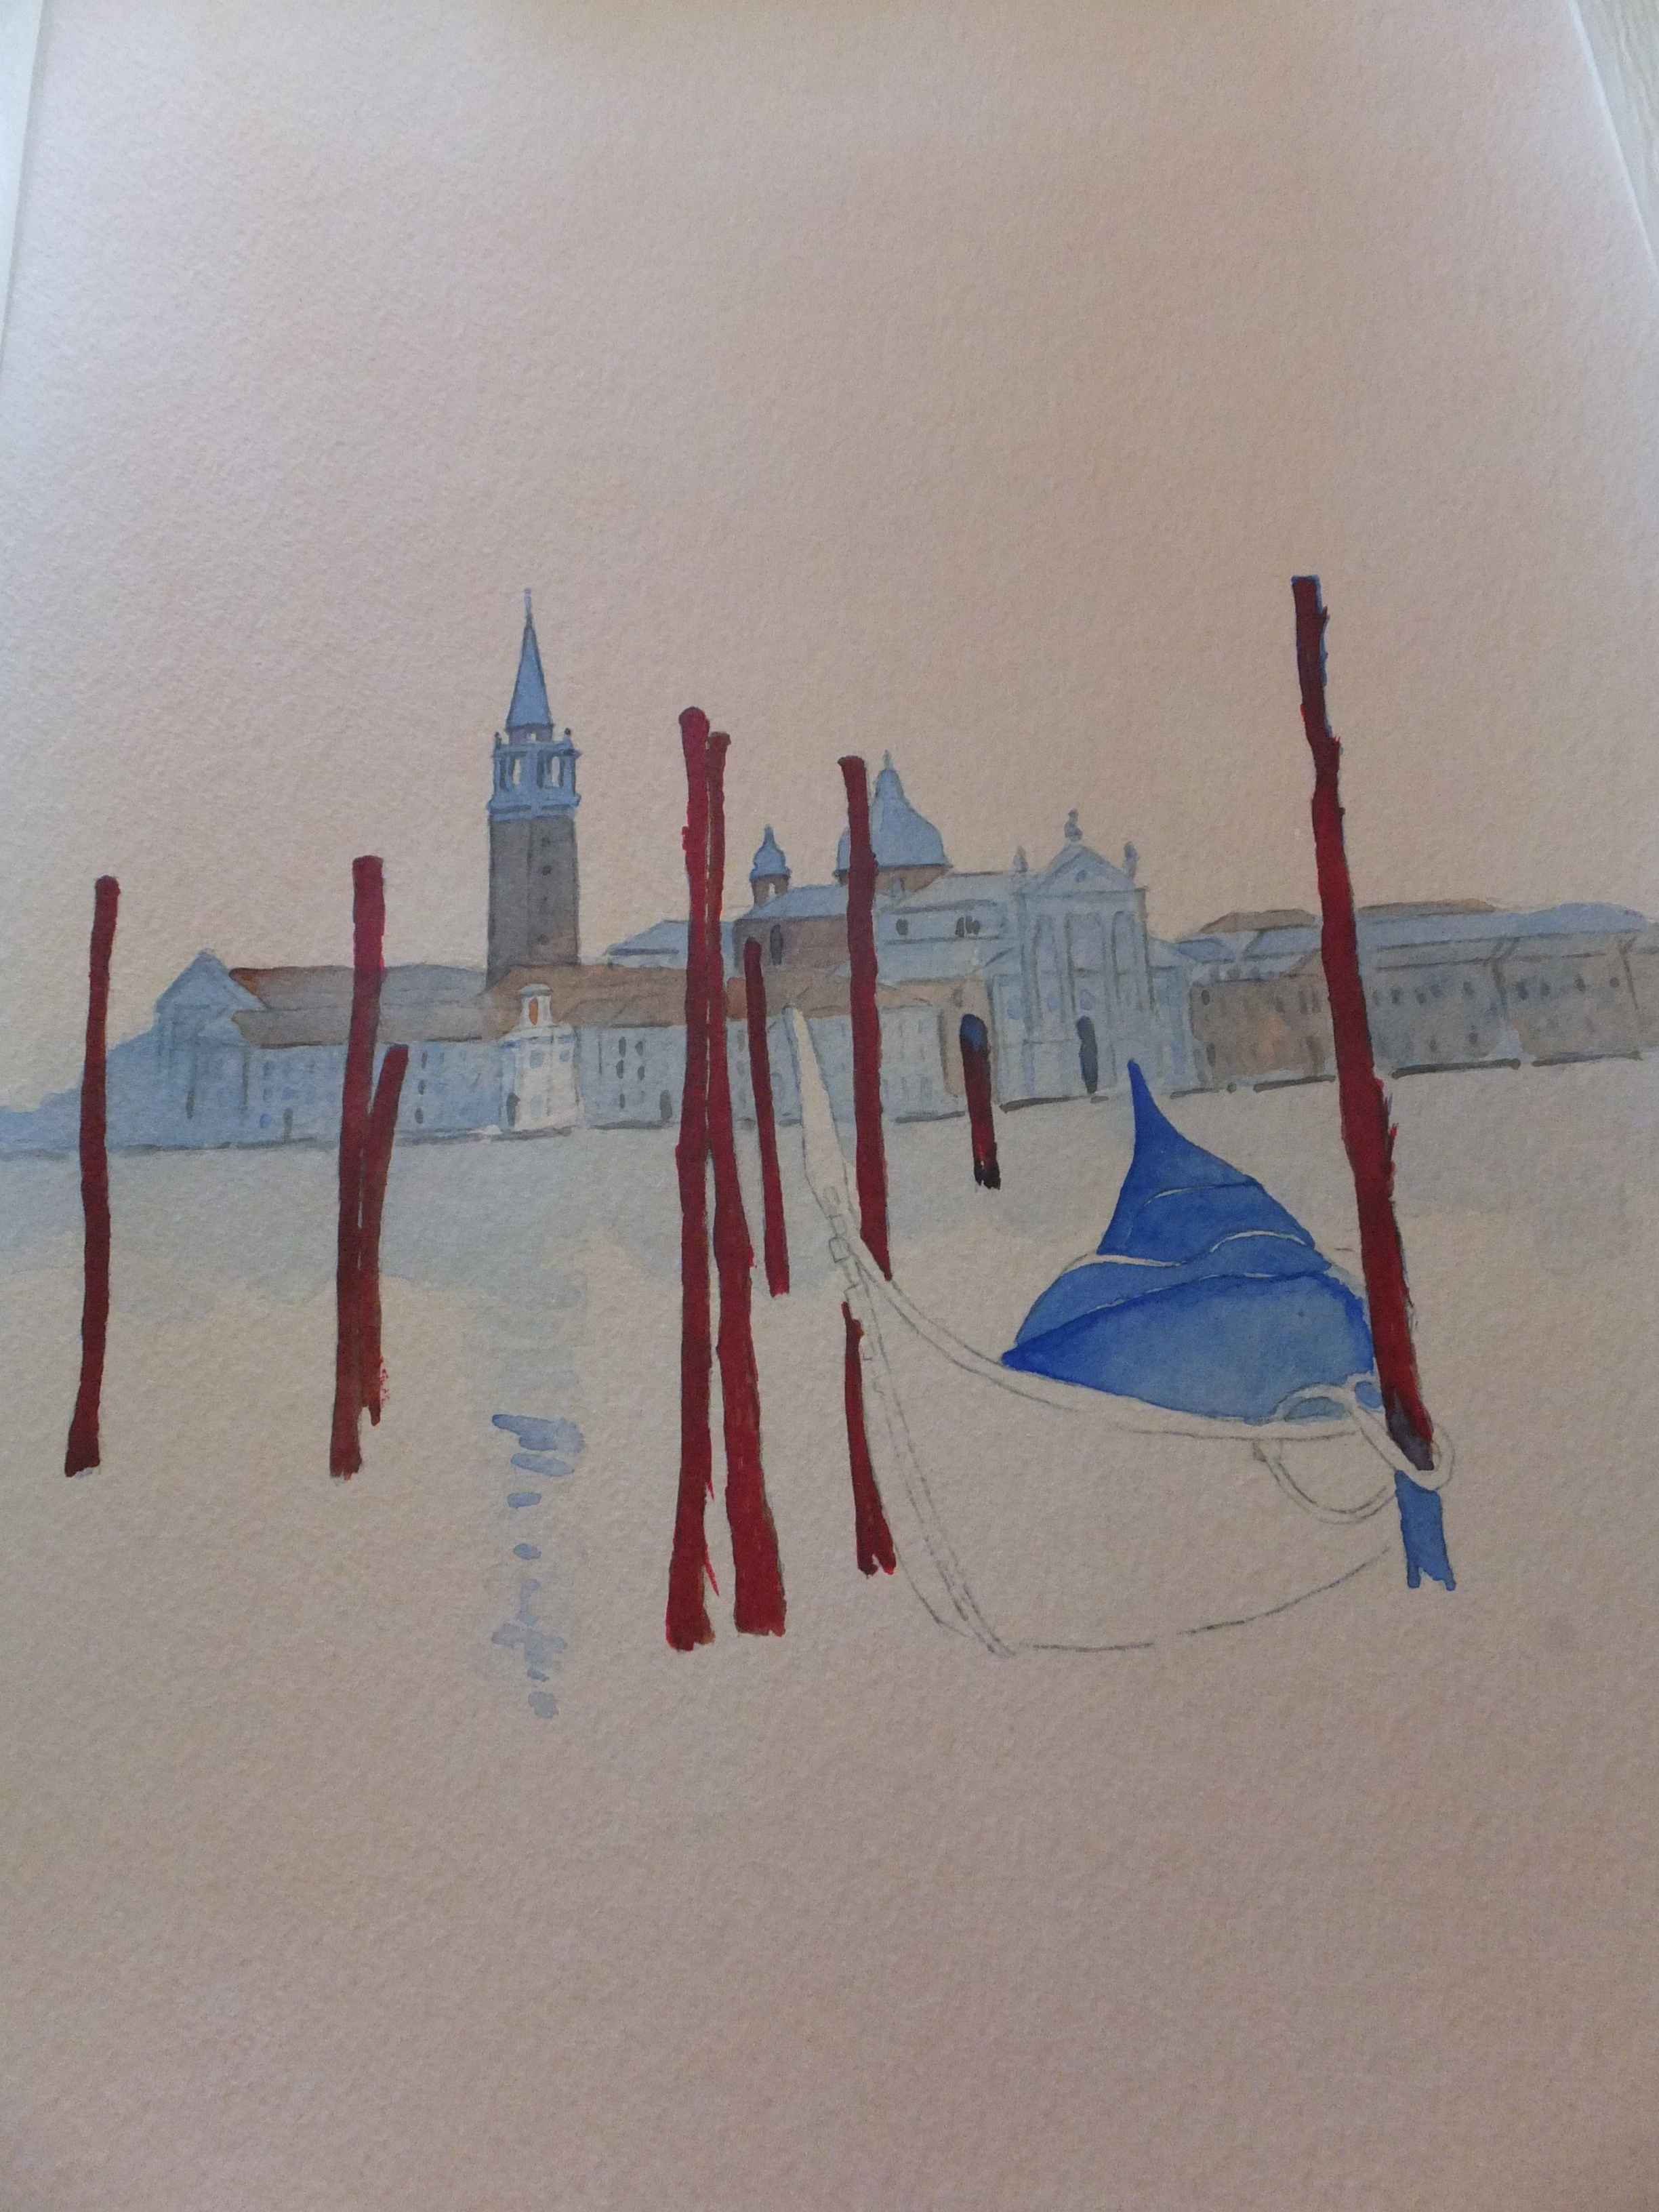 Venice painting to date